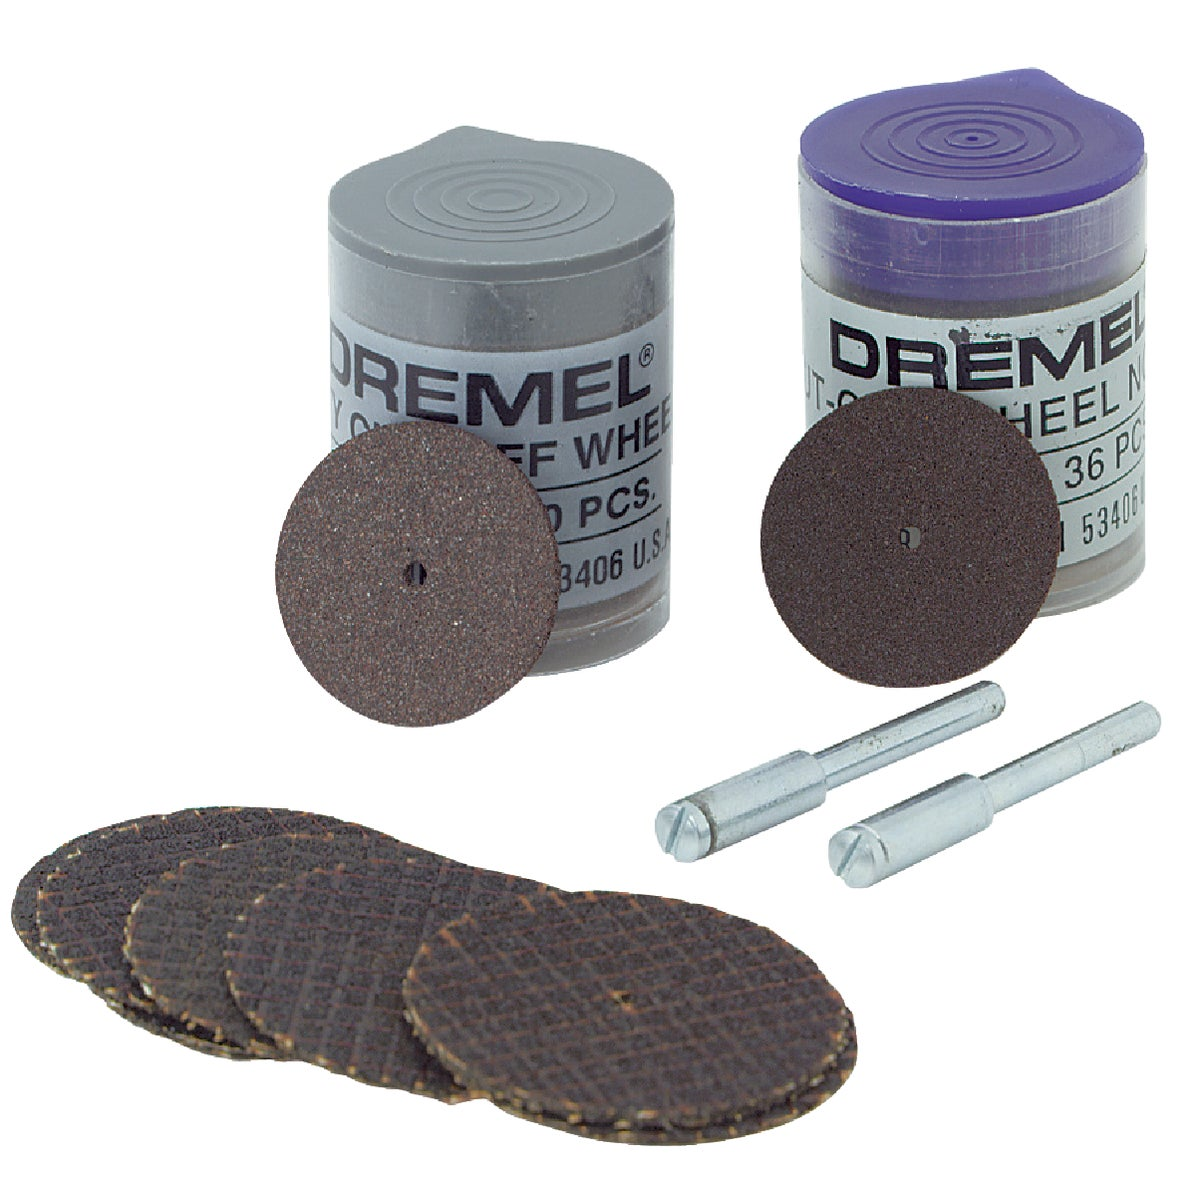 69PC ASTD CUTOFF WHEEL - 688-01 by Dremel Mfg Co